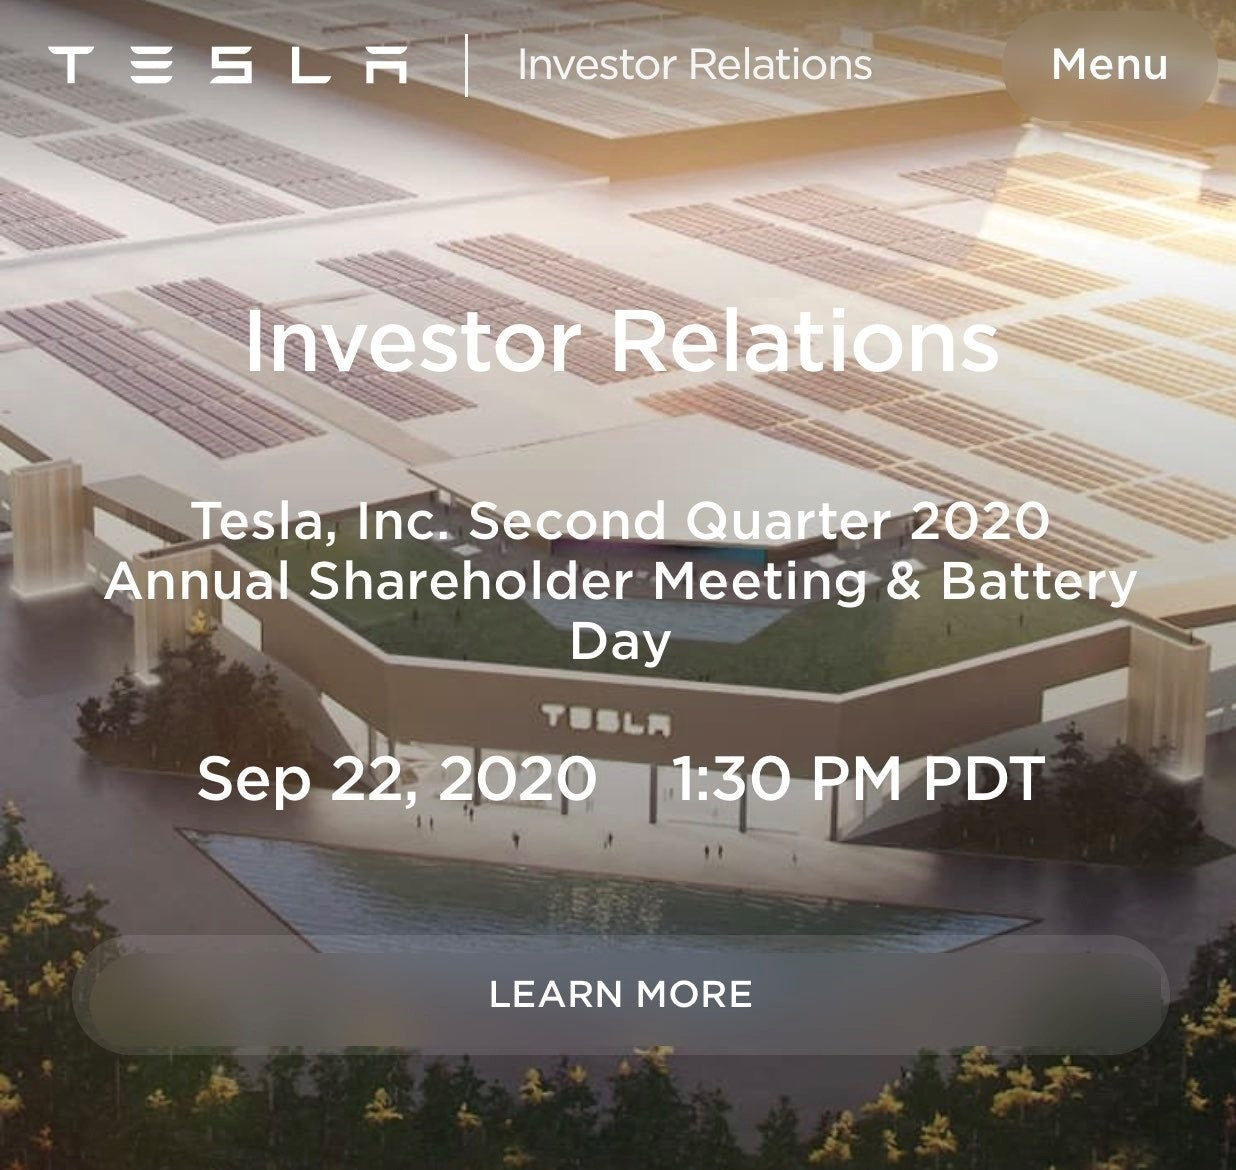 Tesla Battery Day Will Present the Key 'To Accelerating the World's Transition to Sustainable Energy'